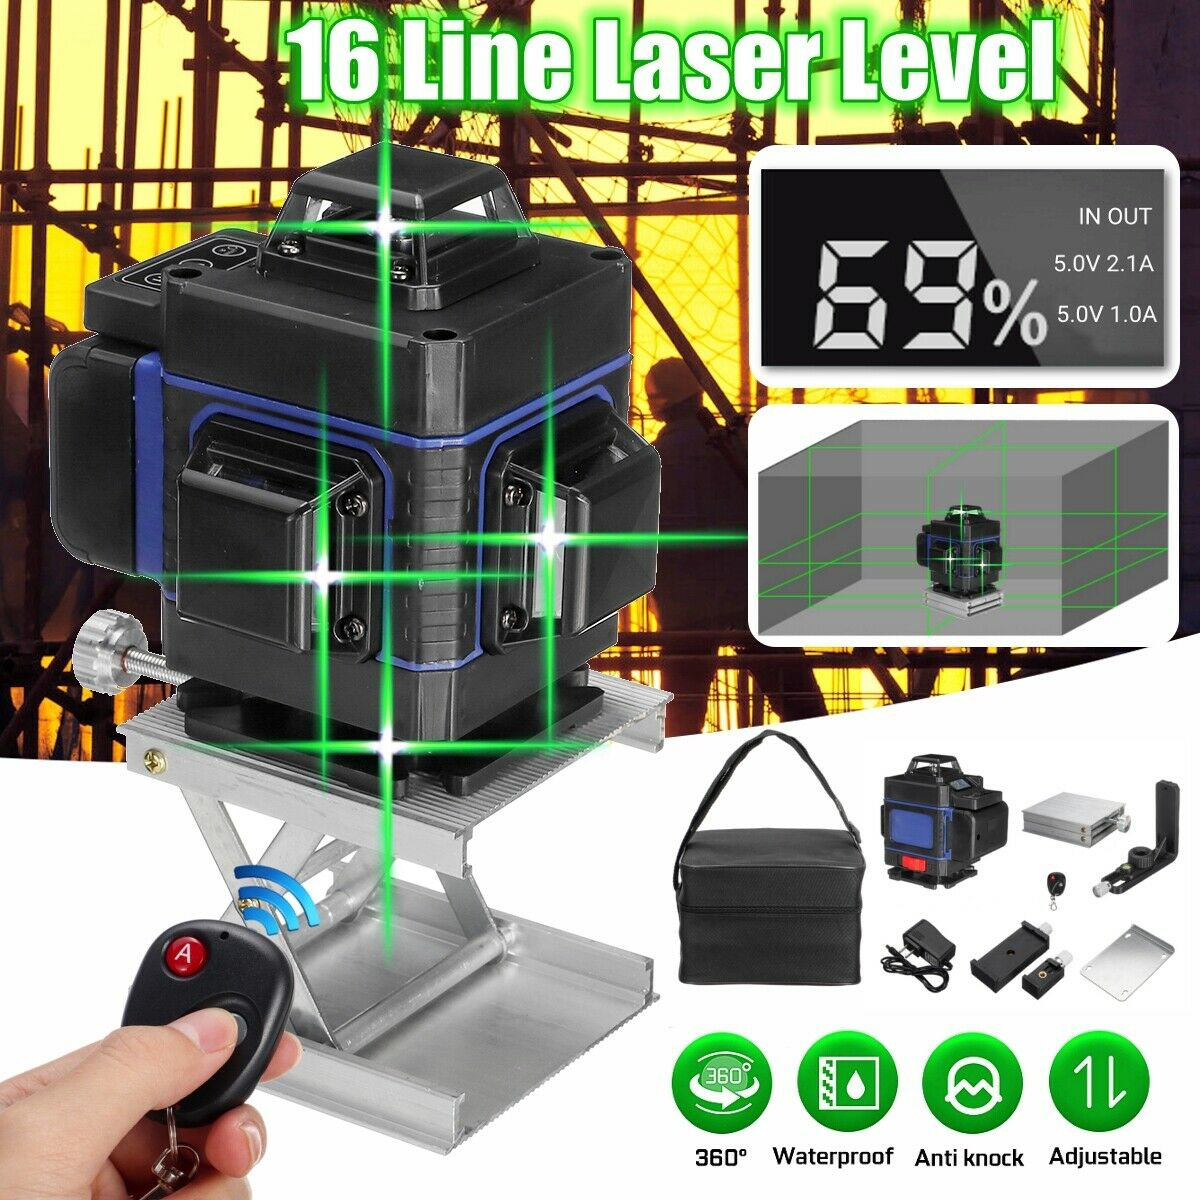 3D 360° 16 Line Laser Level Grün Self Leveling Rotary Cross Measure Tool Remote